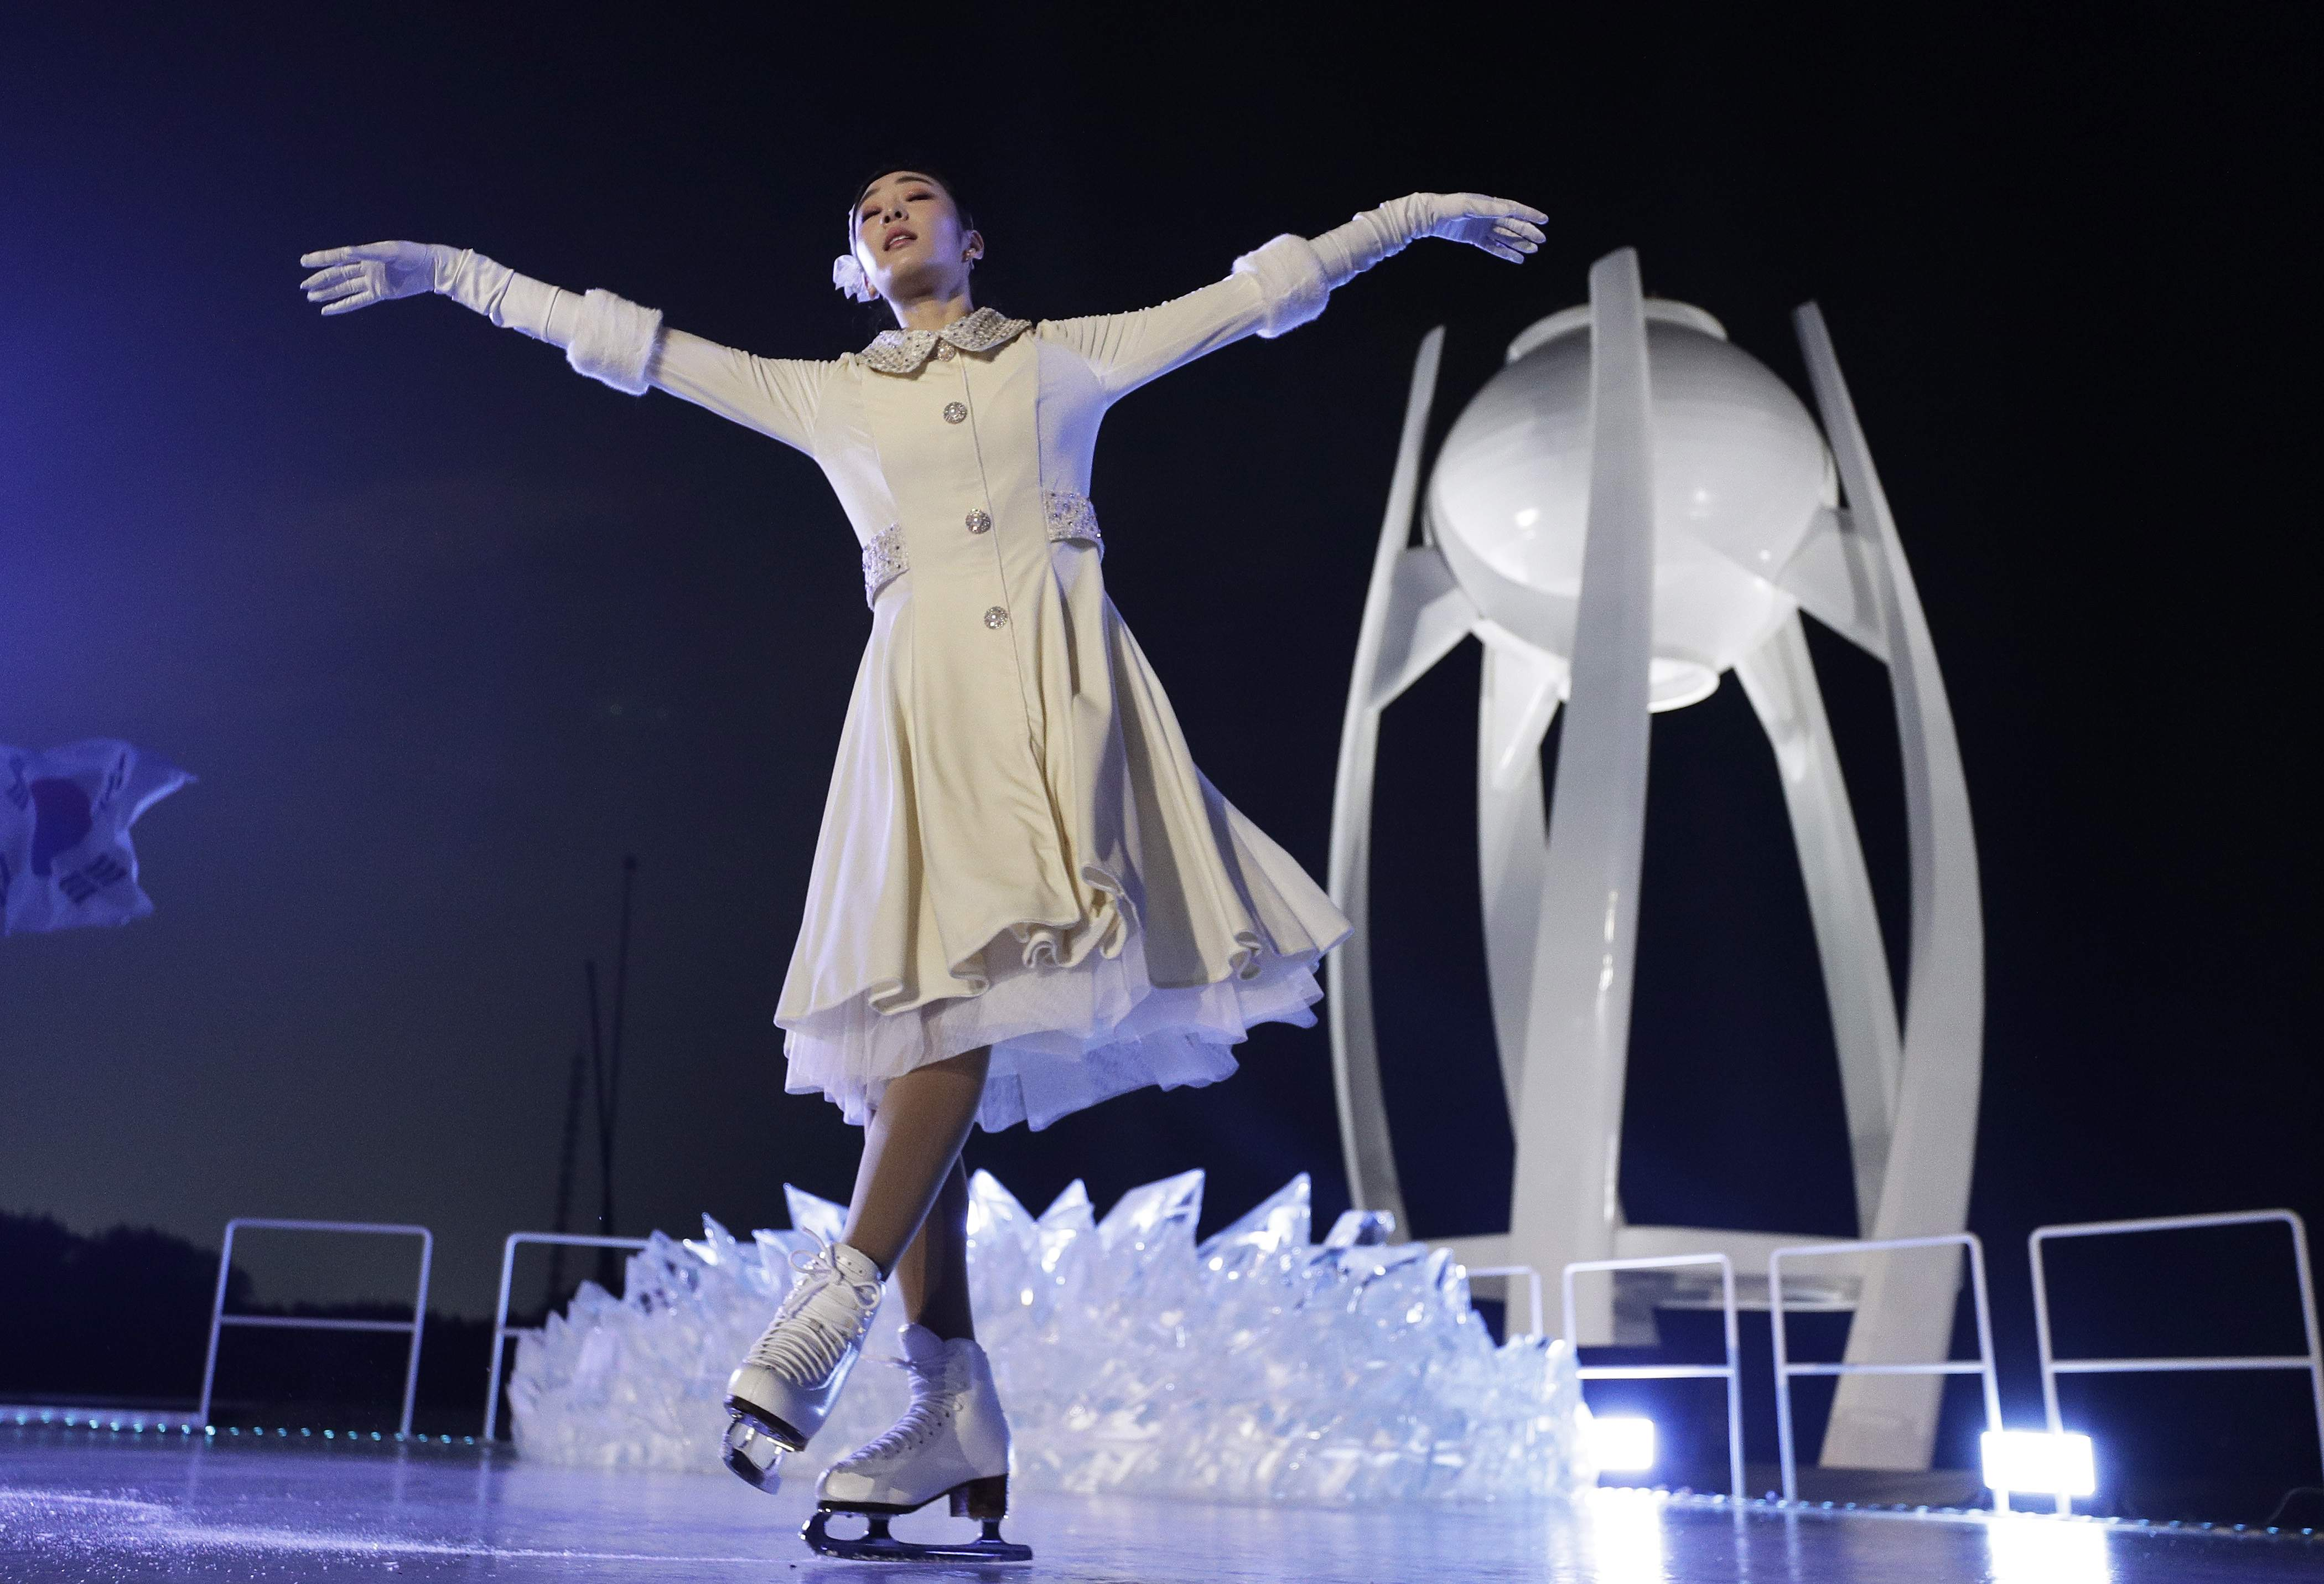 South Korean Olympic figure skating champion Yuna Kim performs before lighting the Olympic flame during the opening ceremony of the 2018 Winter Olympics in Pyeongchang, South Korea, Friday, Feb. 9, 2018. (AP Photo/David J. Phillip,Pool)